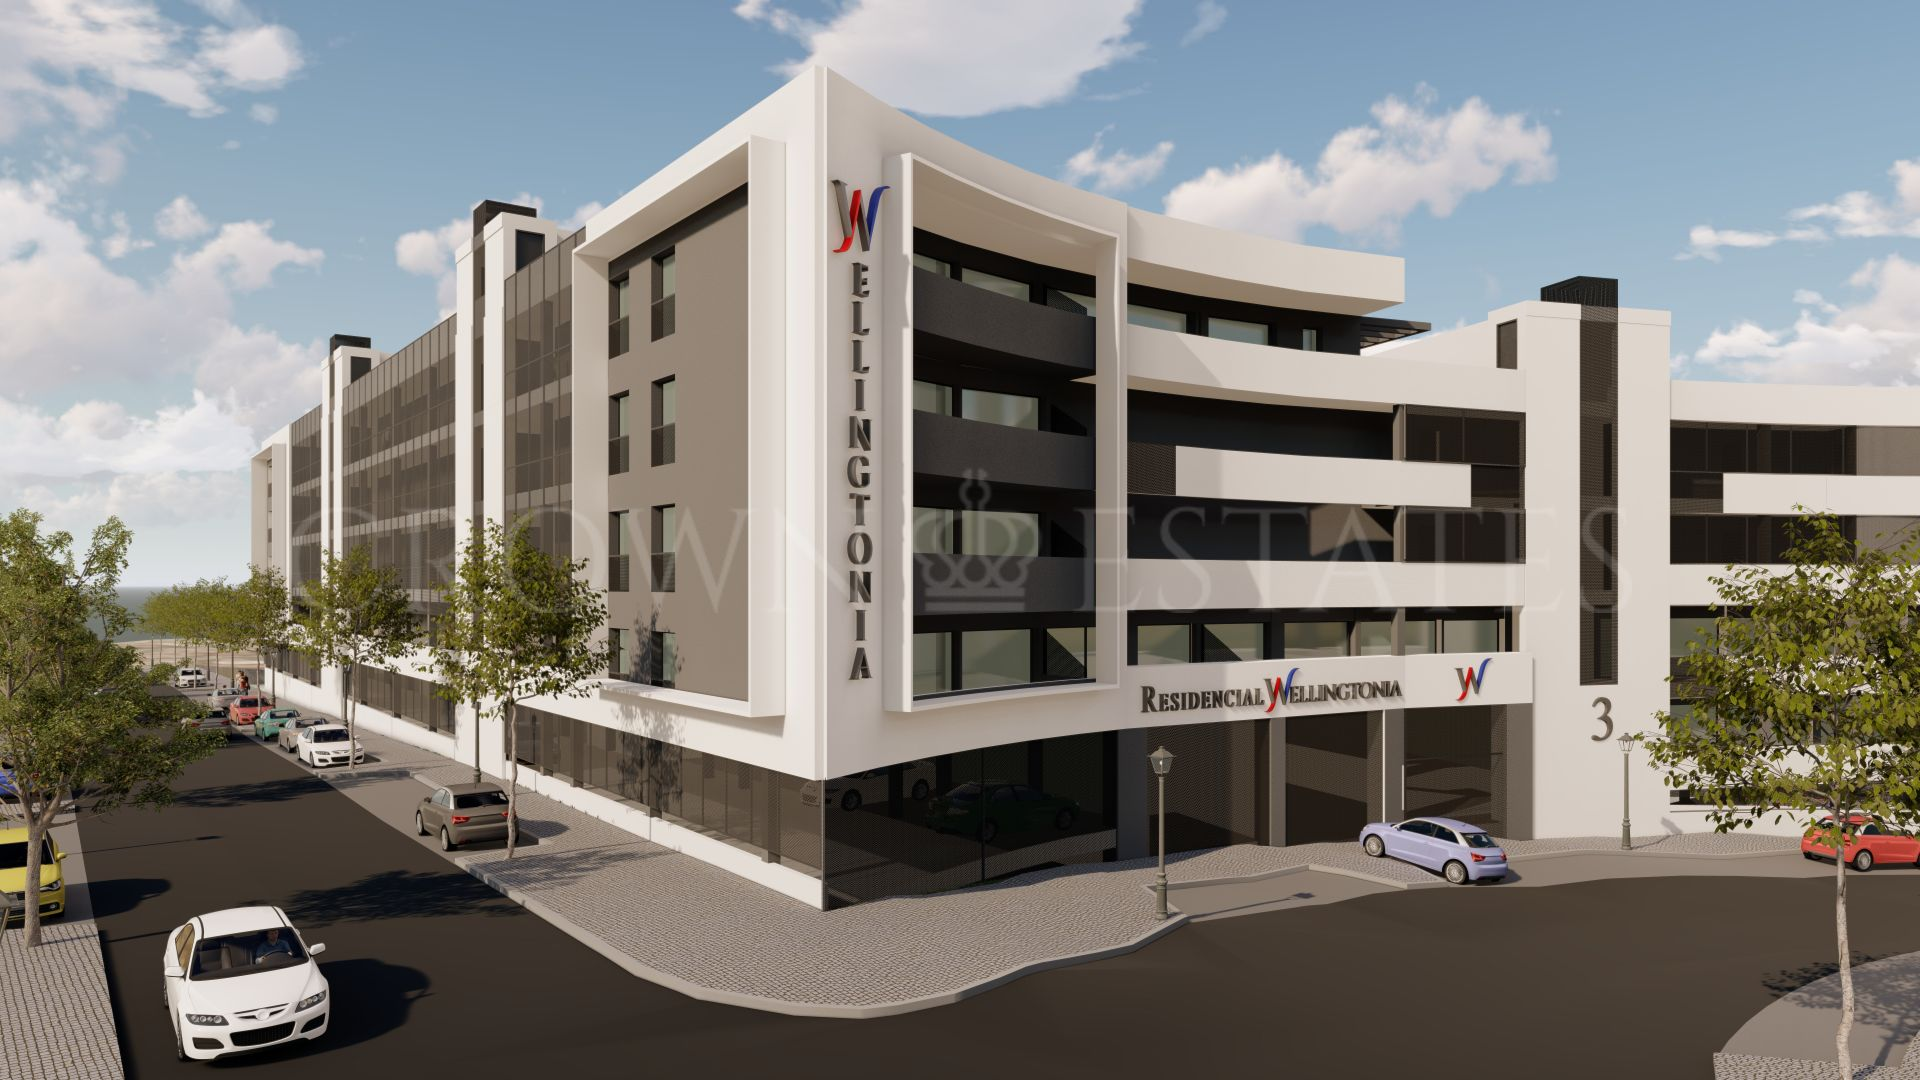 Wellingtonia, modern apartments in the heart of Estepona